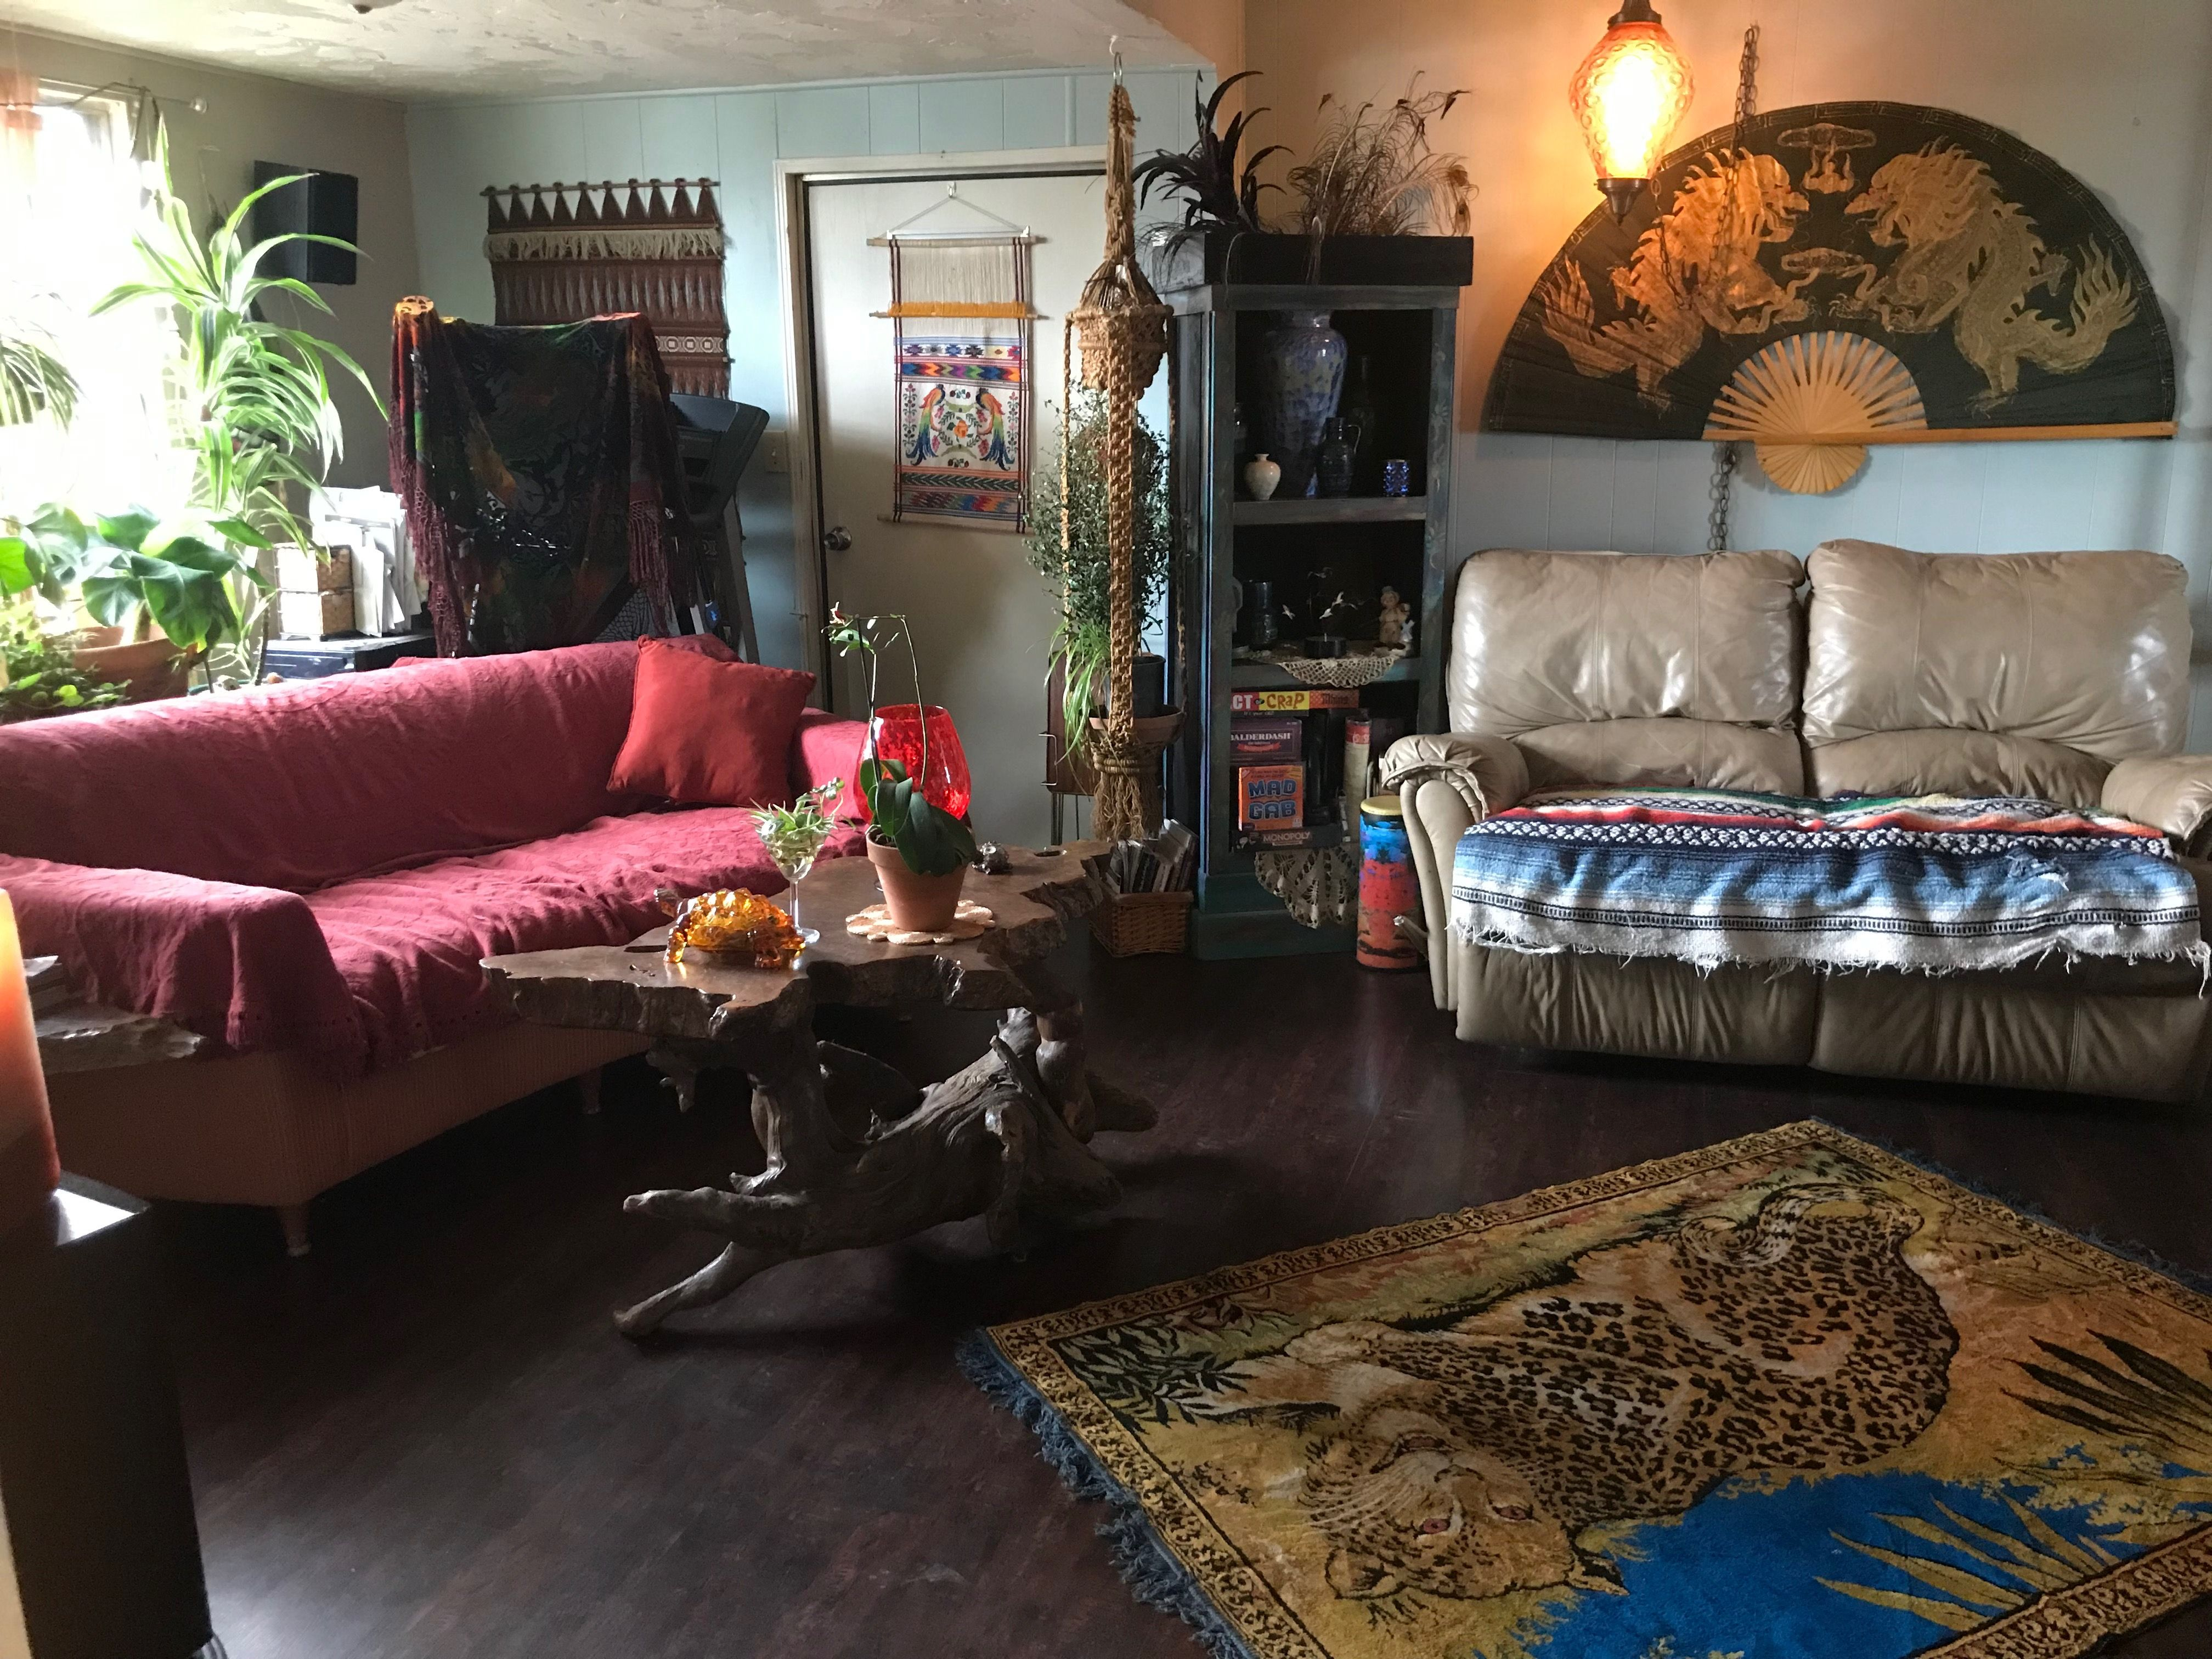 Mobile home with Bohemian Style! Living room decor, warmed ...